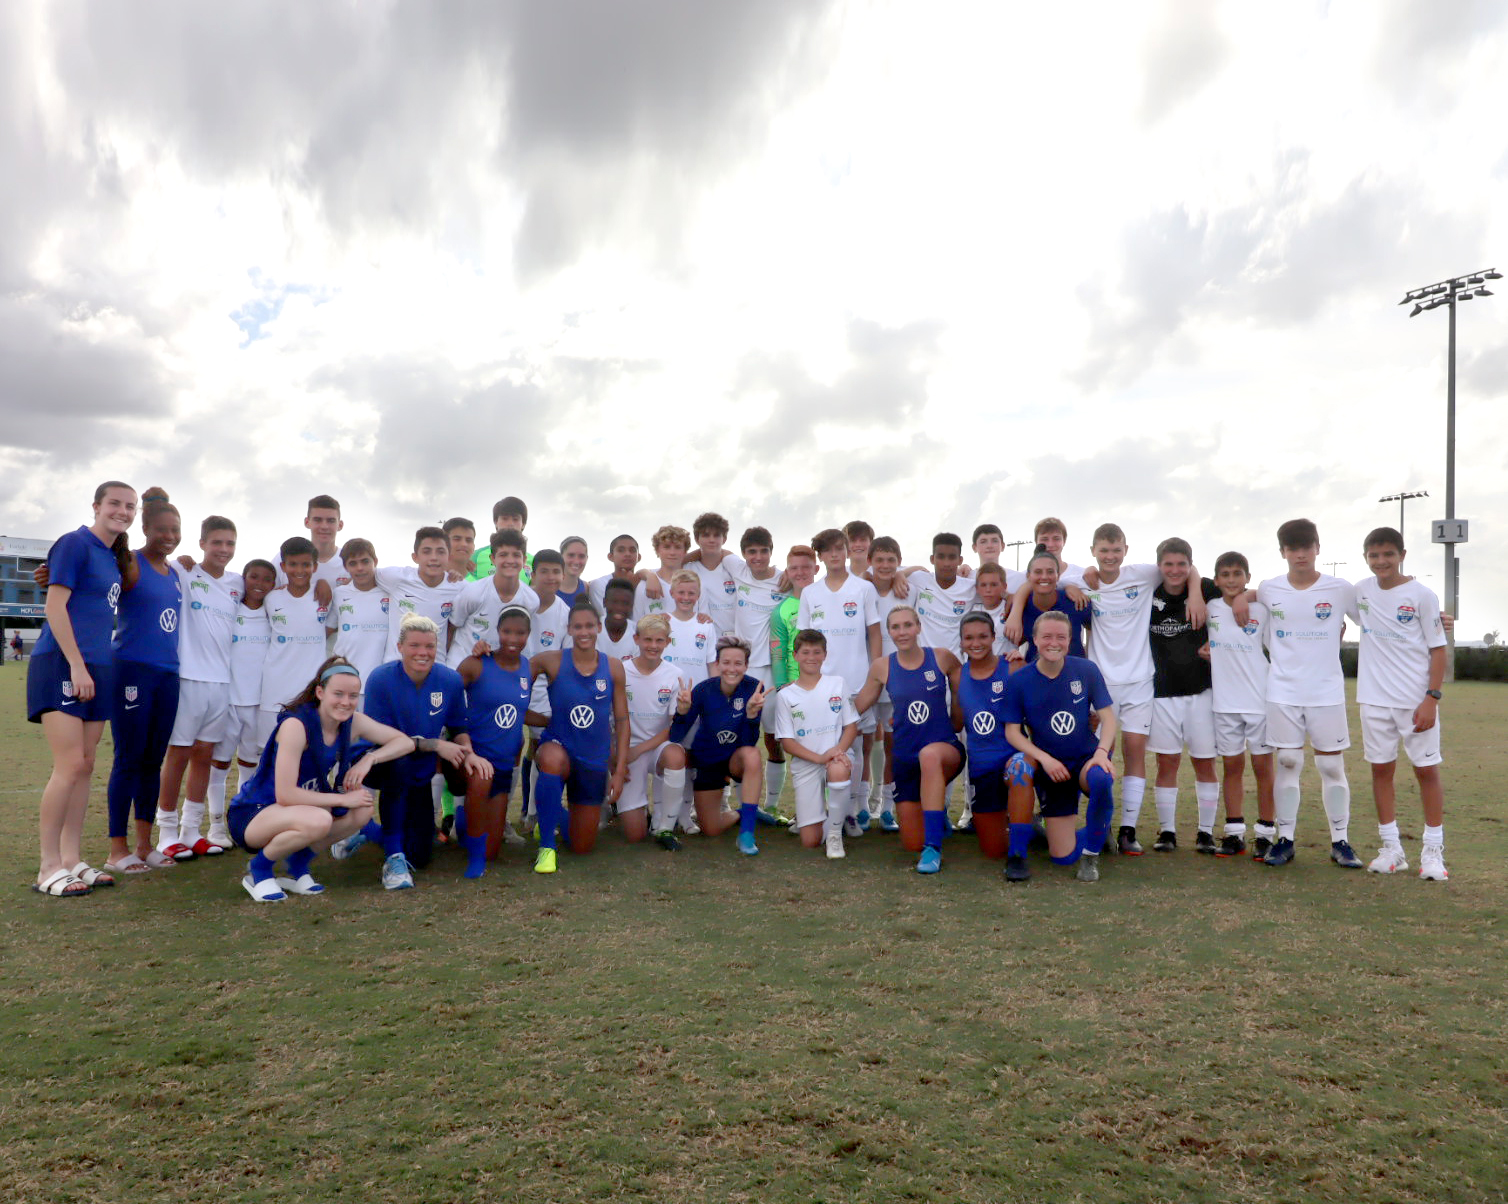 Gr. 8 Soccer Standout Scrimmages with U.S. Women's Soccer Team